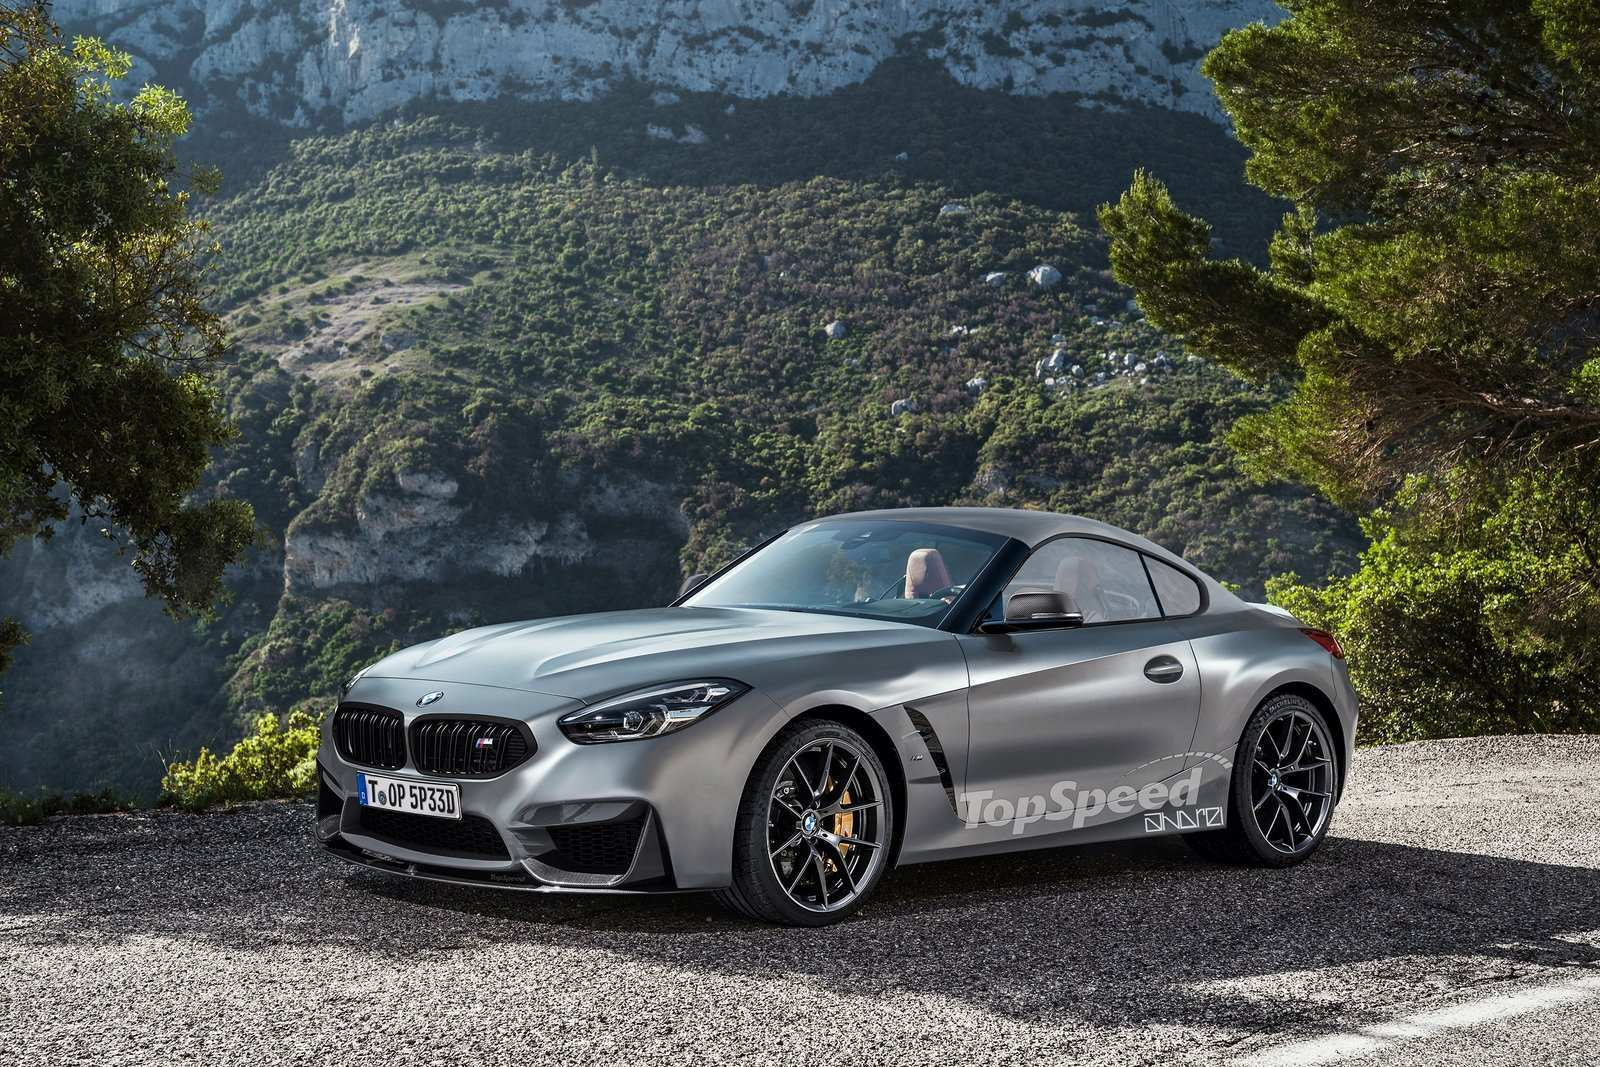 69 Gallery of 2020 BMW Z4 M Roadster Performance for 2020 BMW Z4 M Roadster